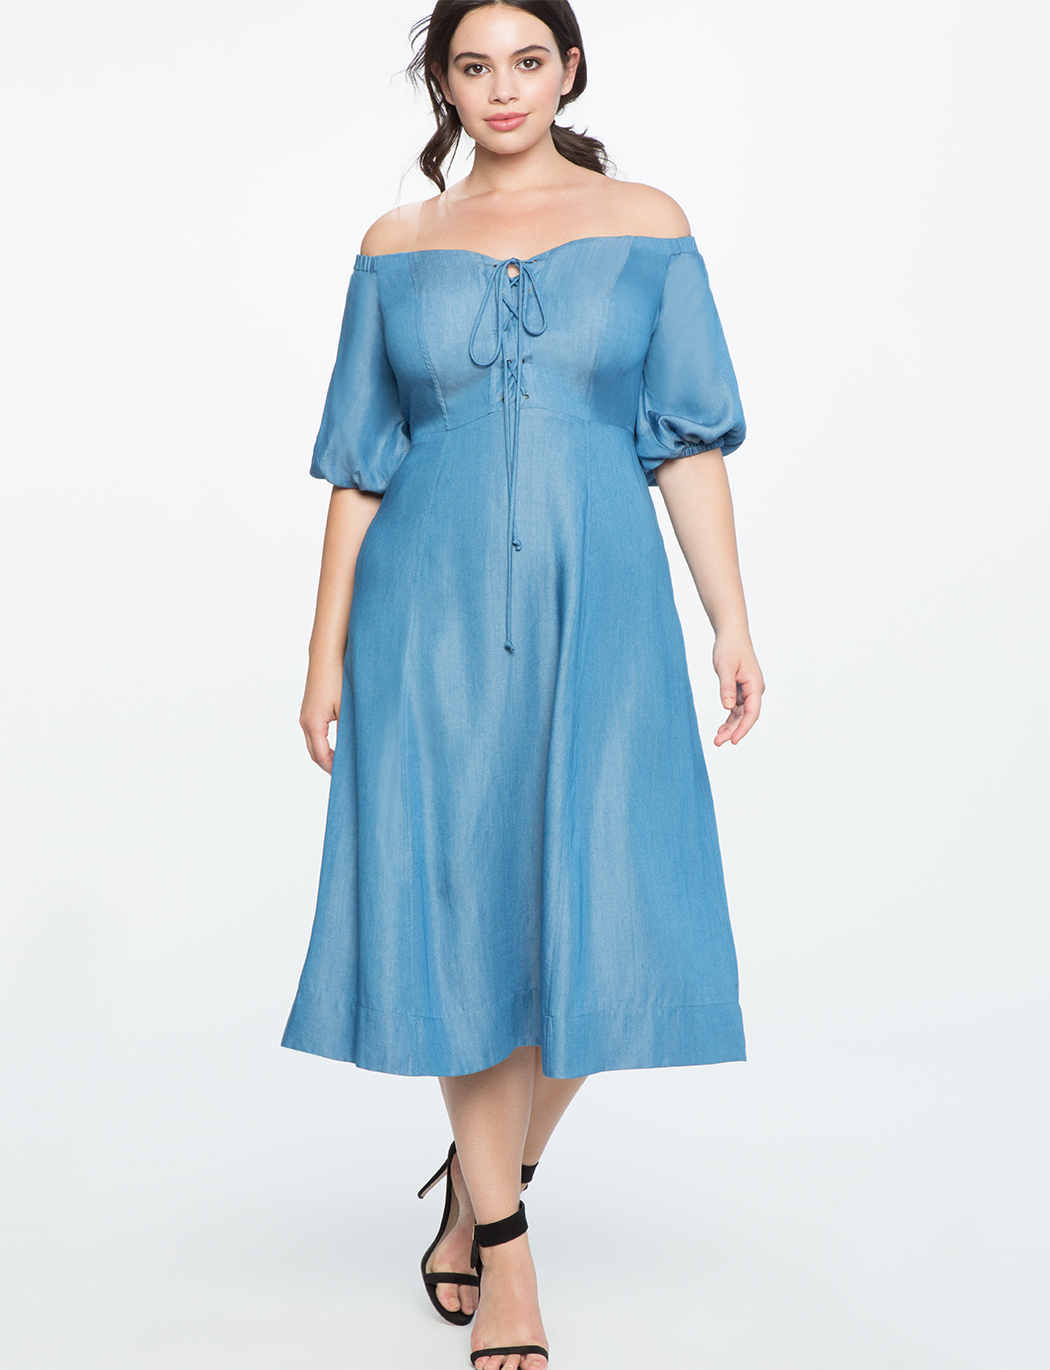 0ee4a4f4e759 Lace Up Bodice Off the Shoulder Dress